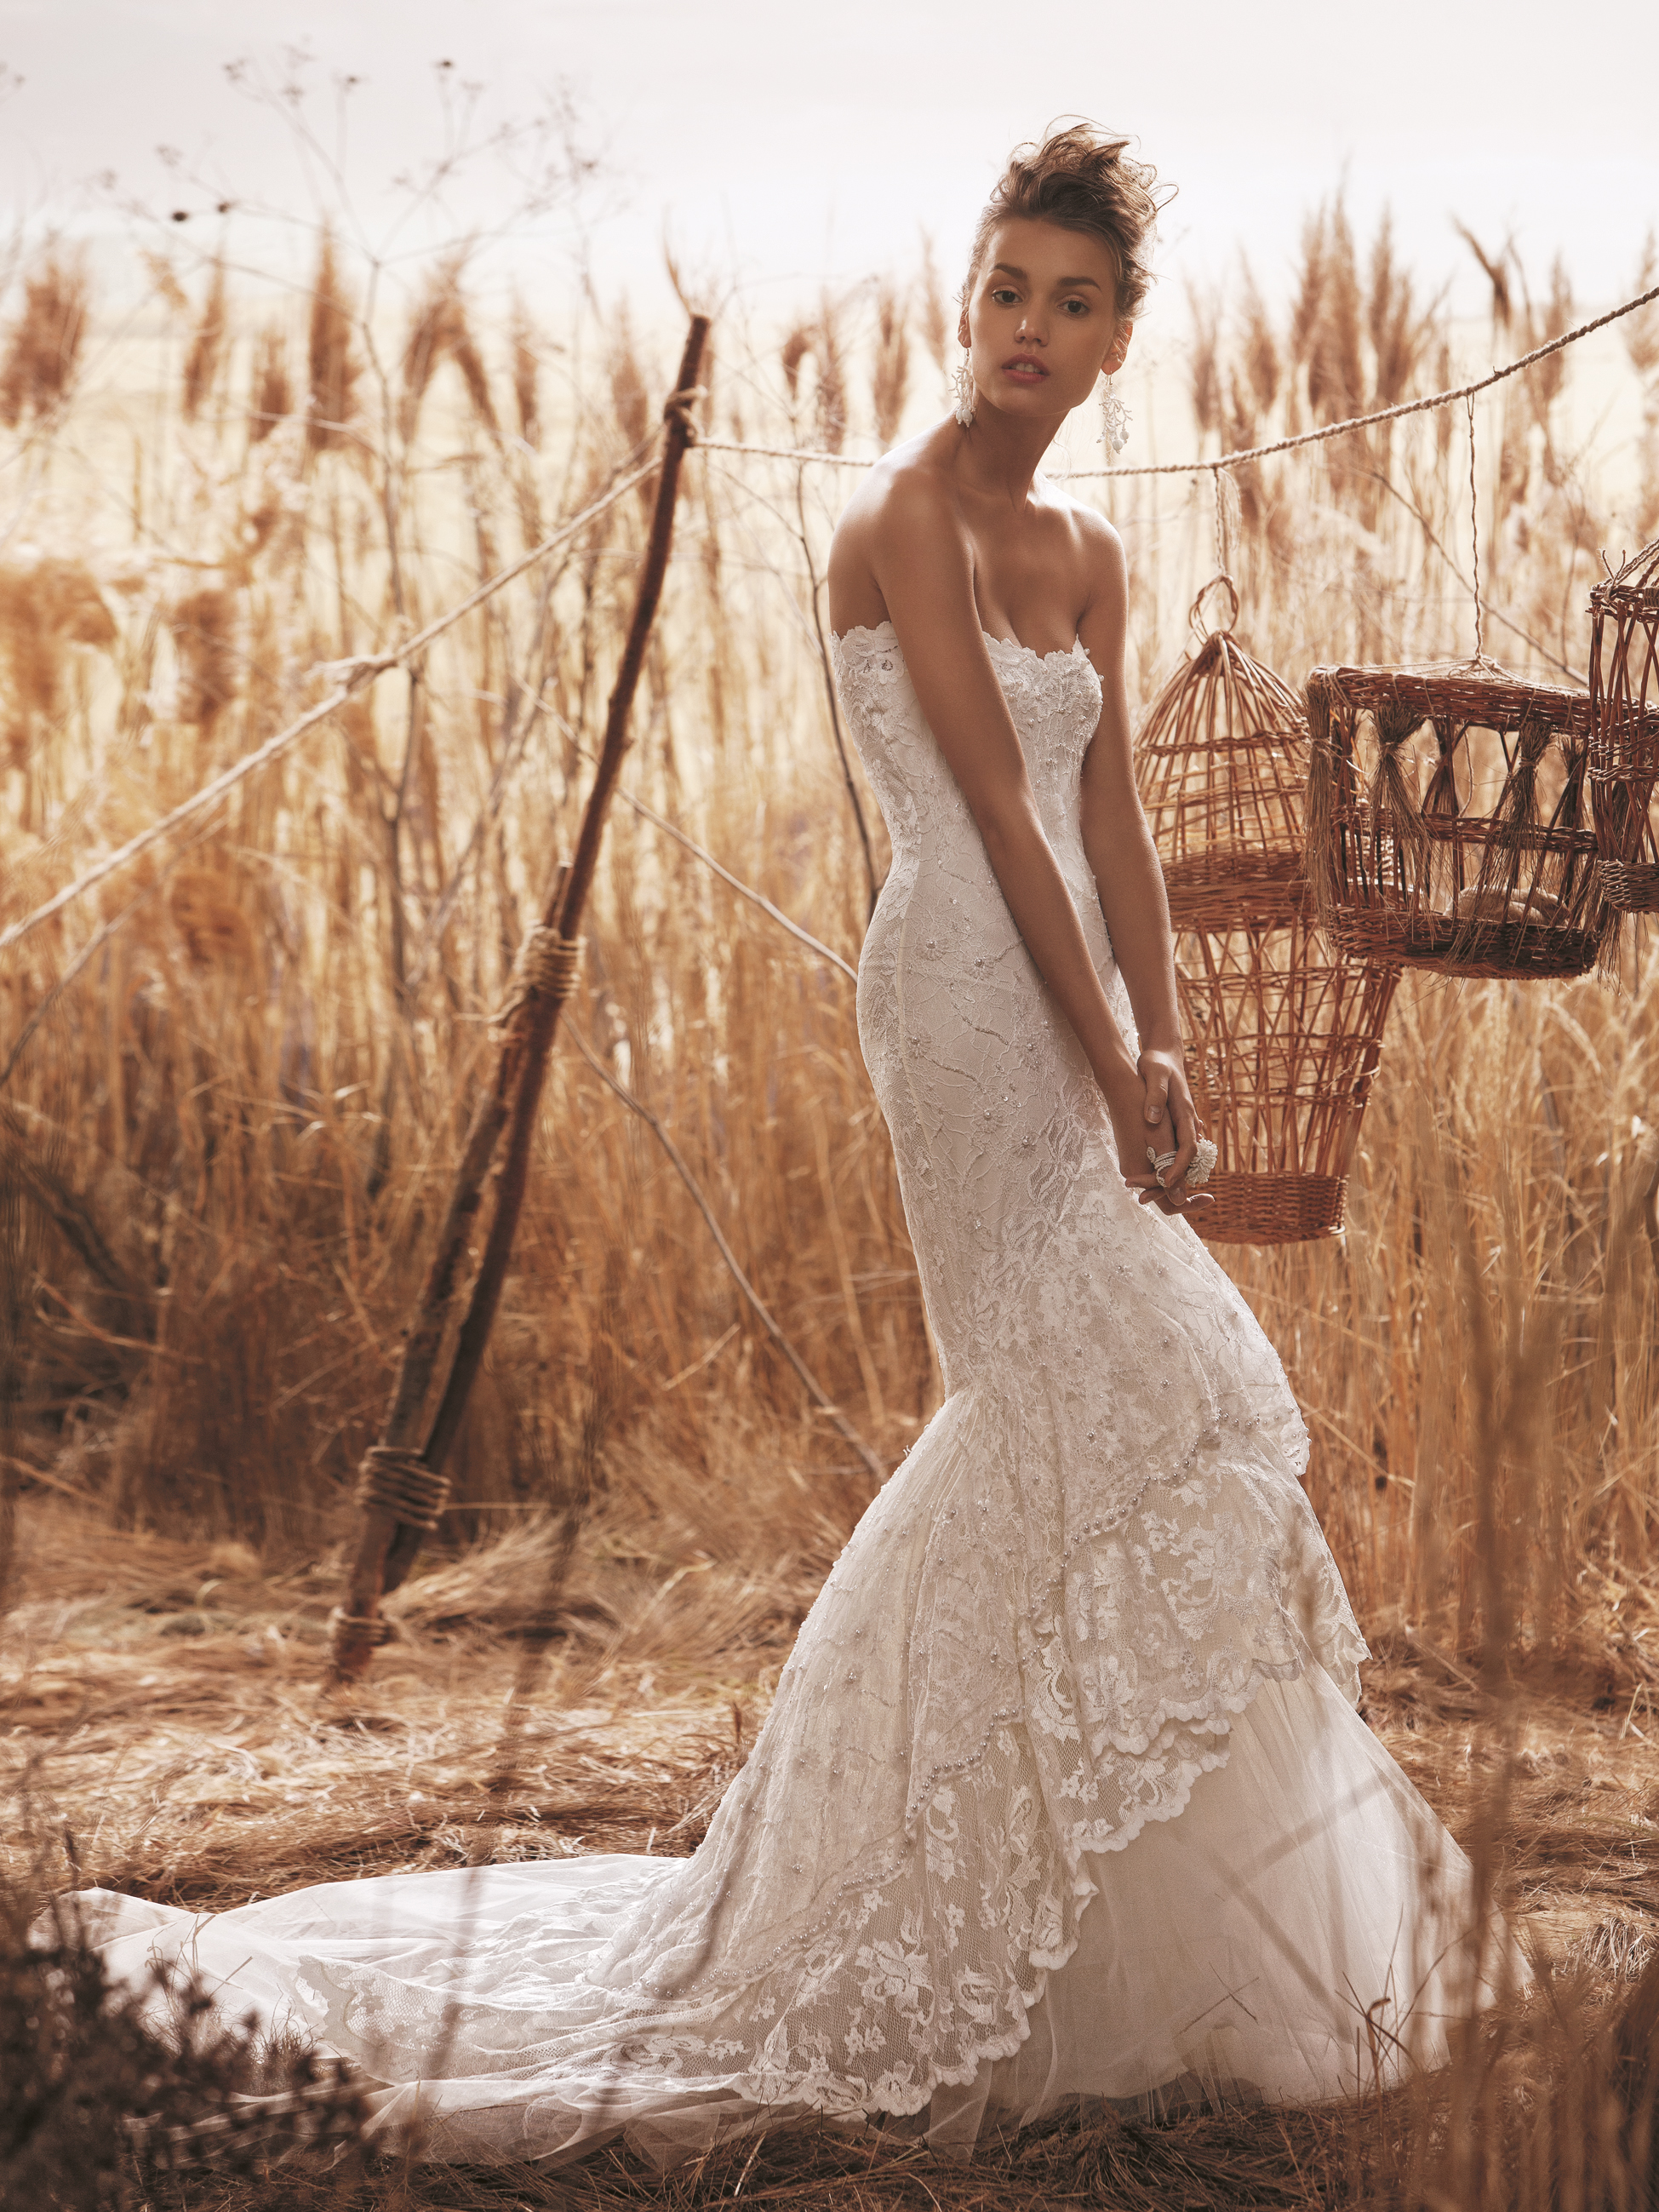 Wedding Gowns From Olvi's